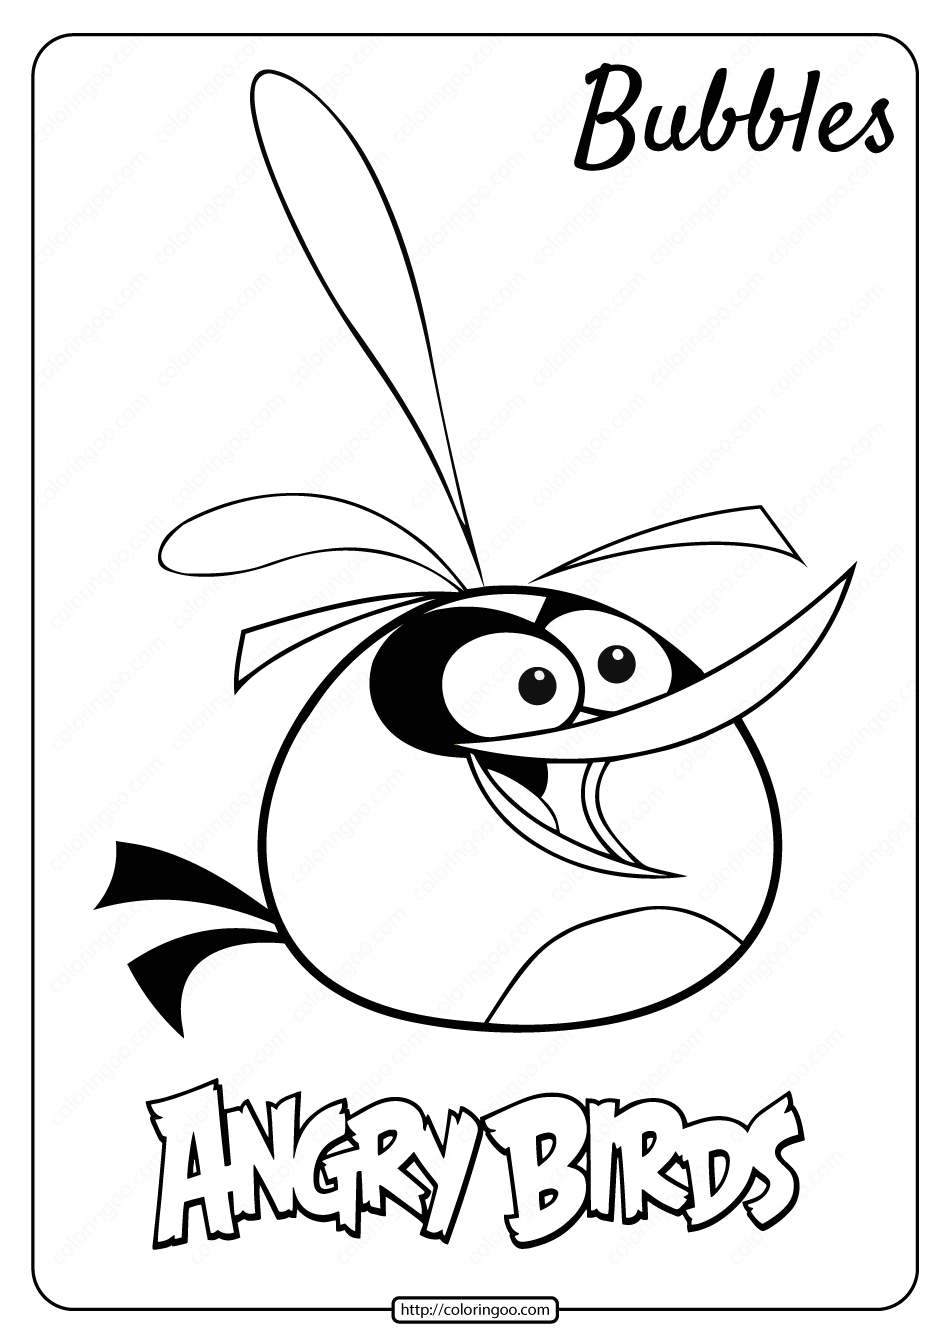 Printable Angry Birds Bubbles Pdf Coloring Page Coloring Pages Angry Birds Coloring Books